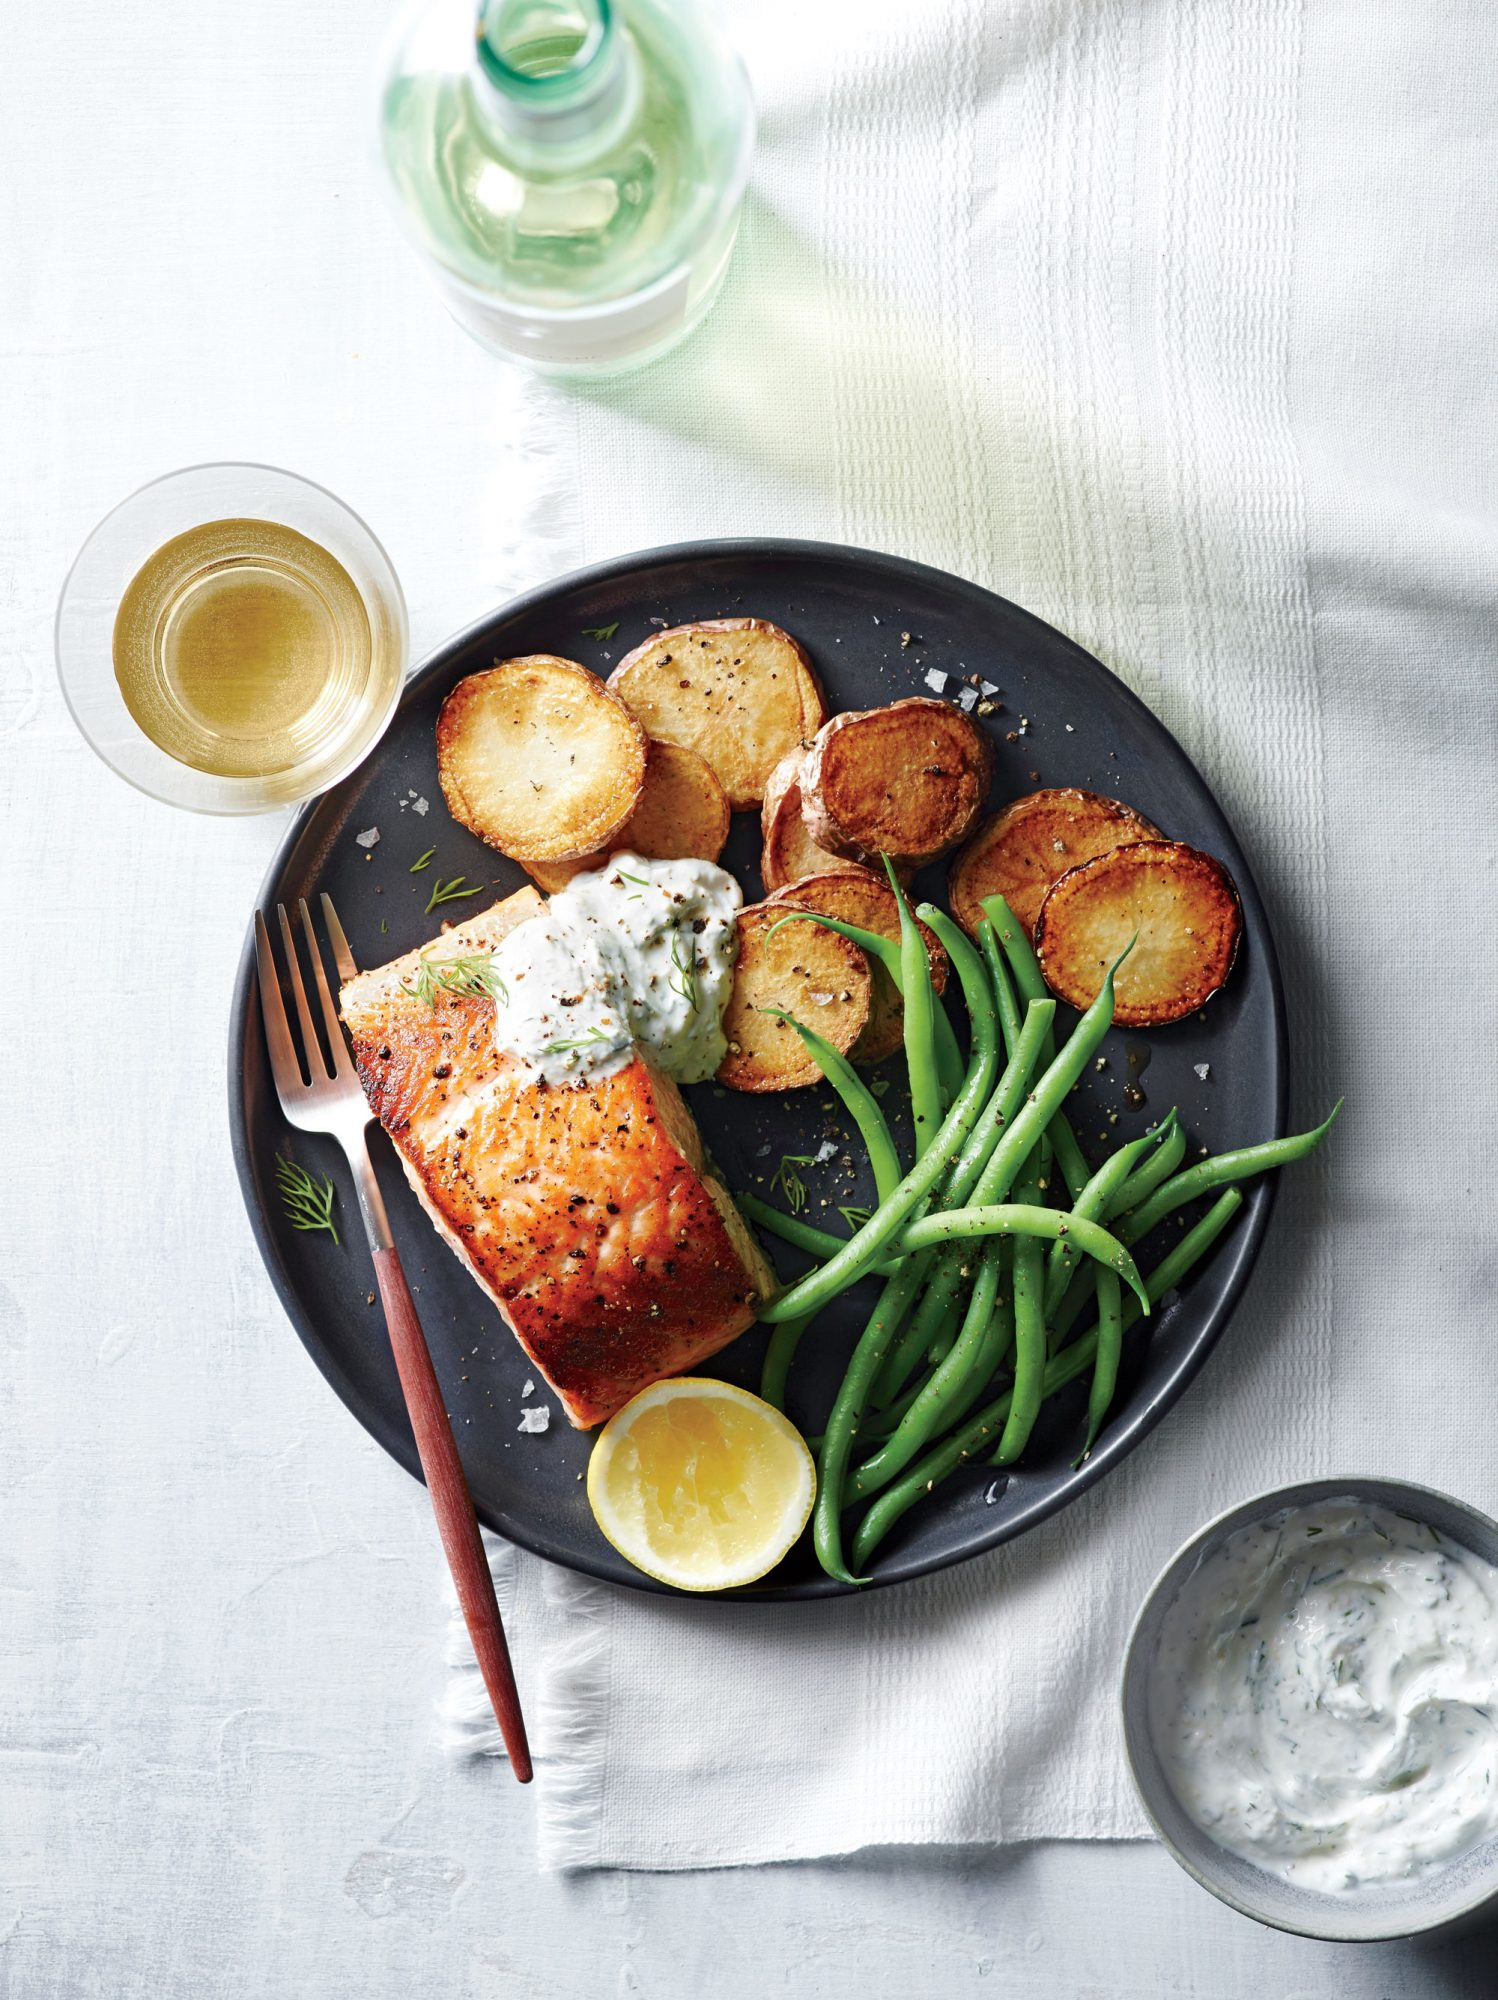 quick fish dinners in 15 minutes or less | myrecipes